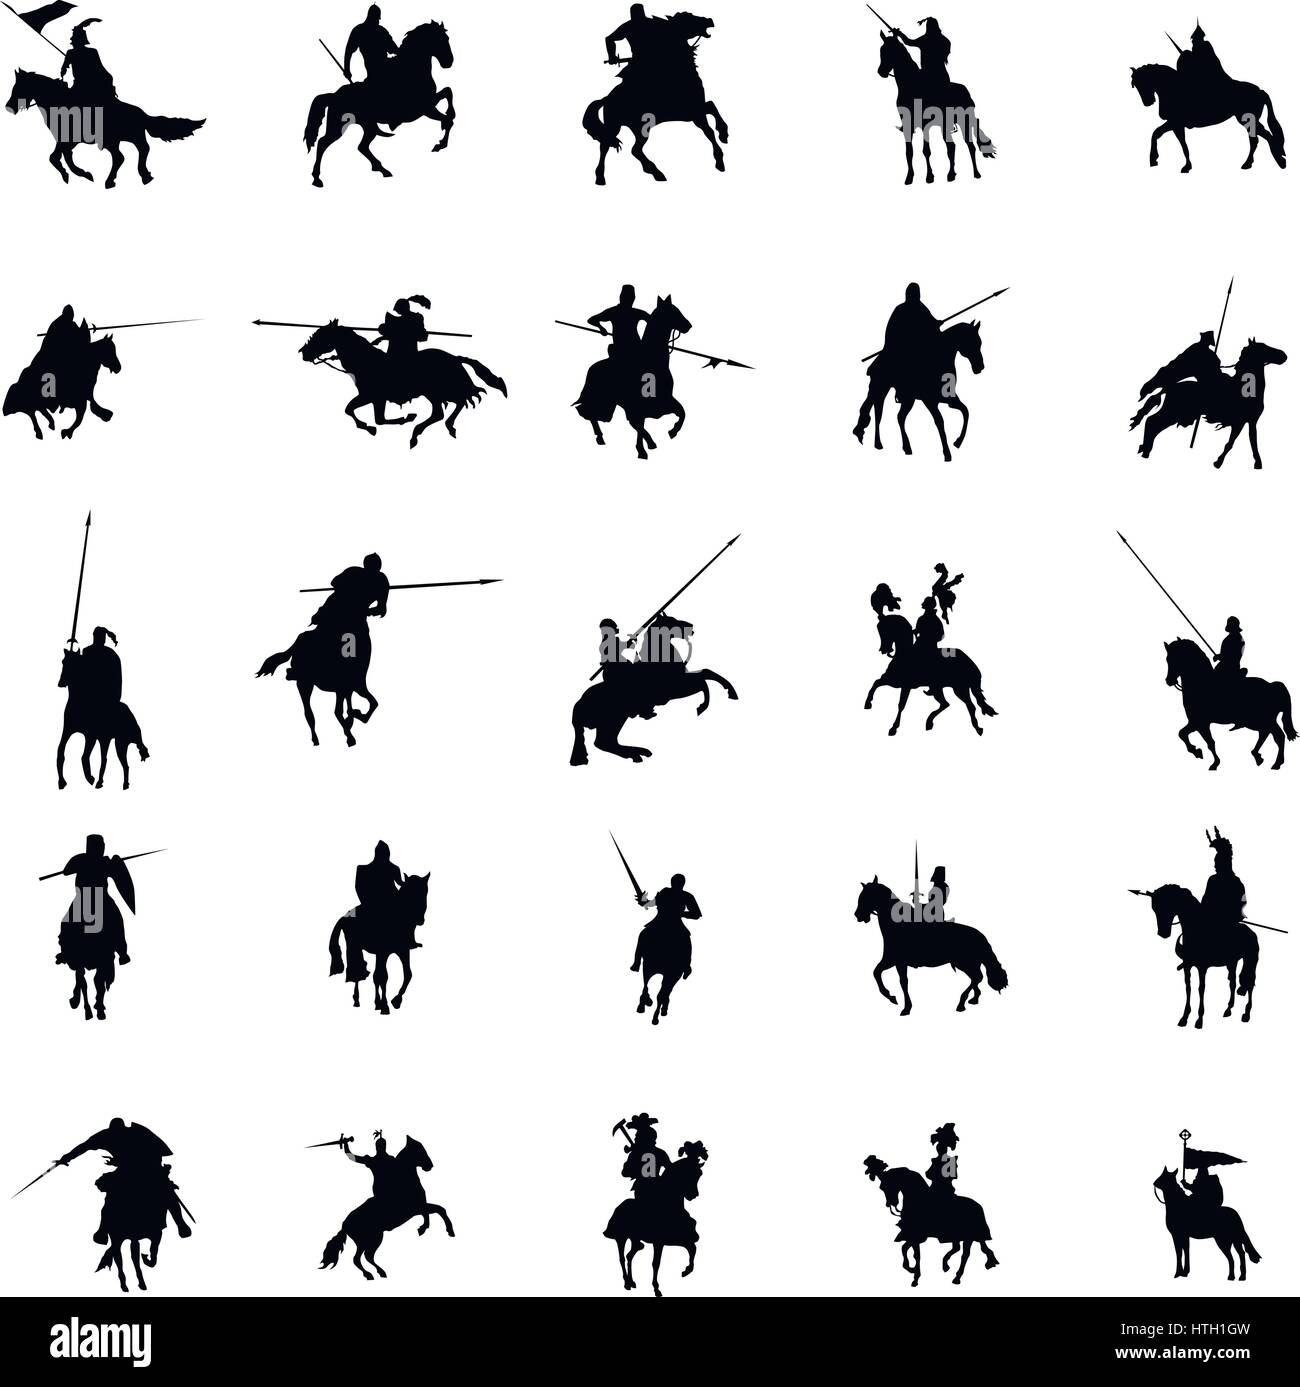 Knight and horse silhouette set - Stock Image